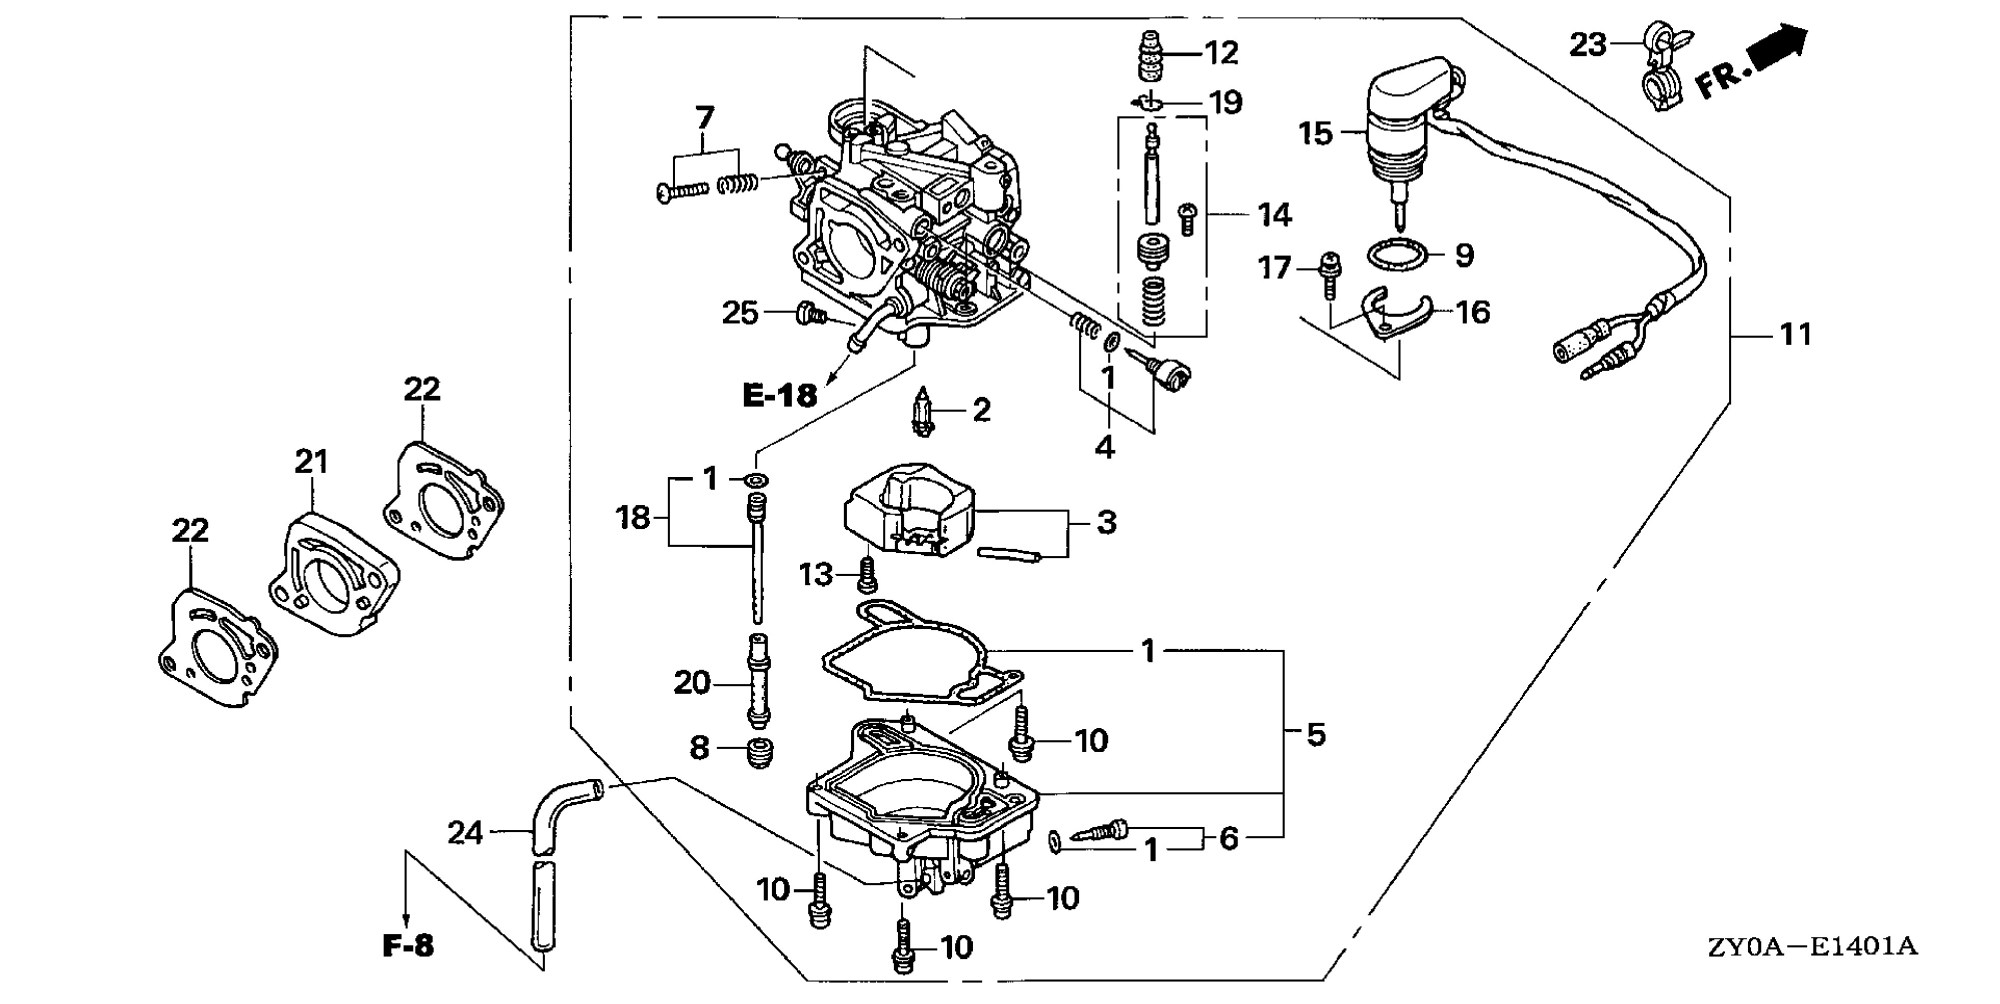 hight resolution of evinrude 15 hp parts diagram motor parts january 2016 of evinrude 15 hp parts diagram power